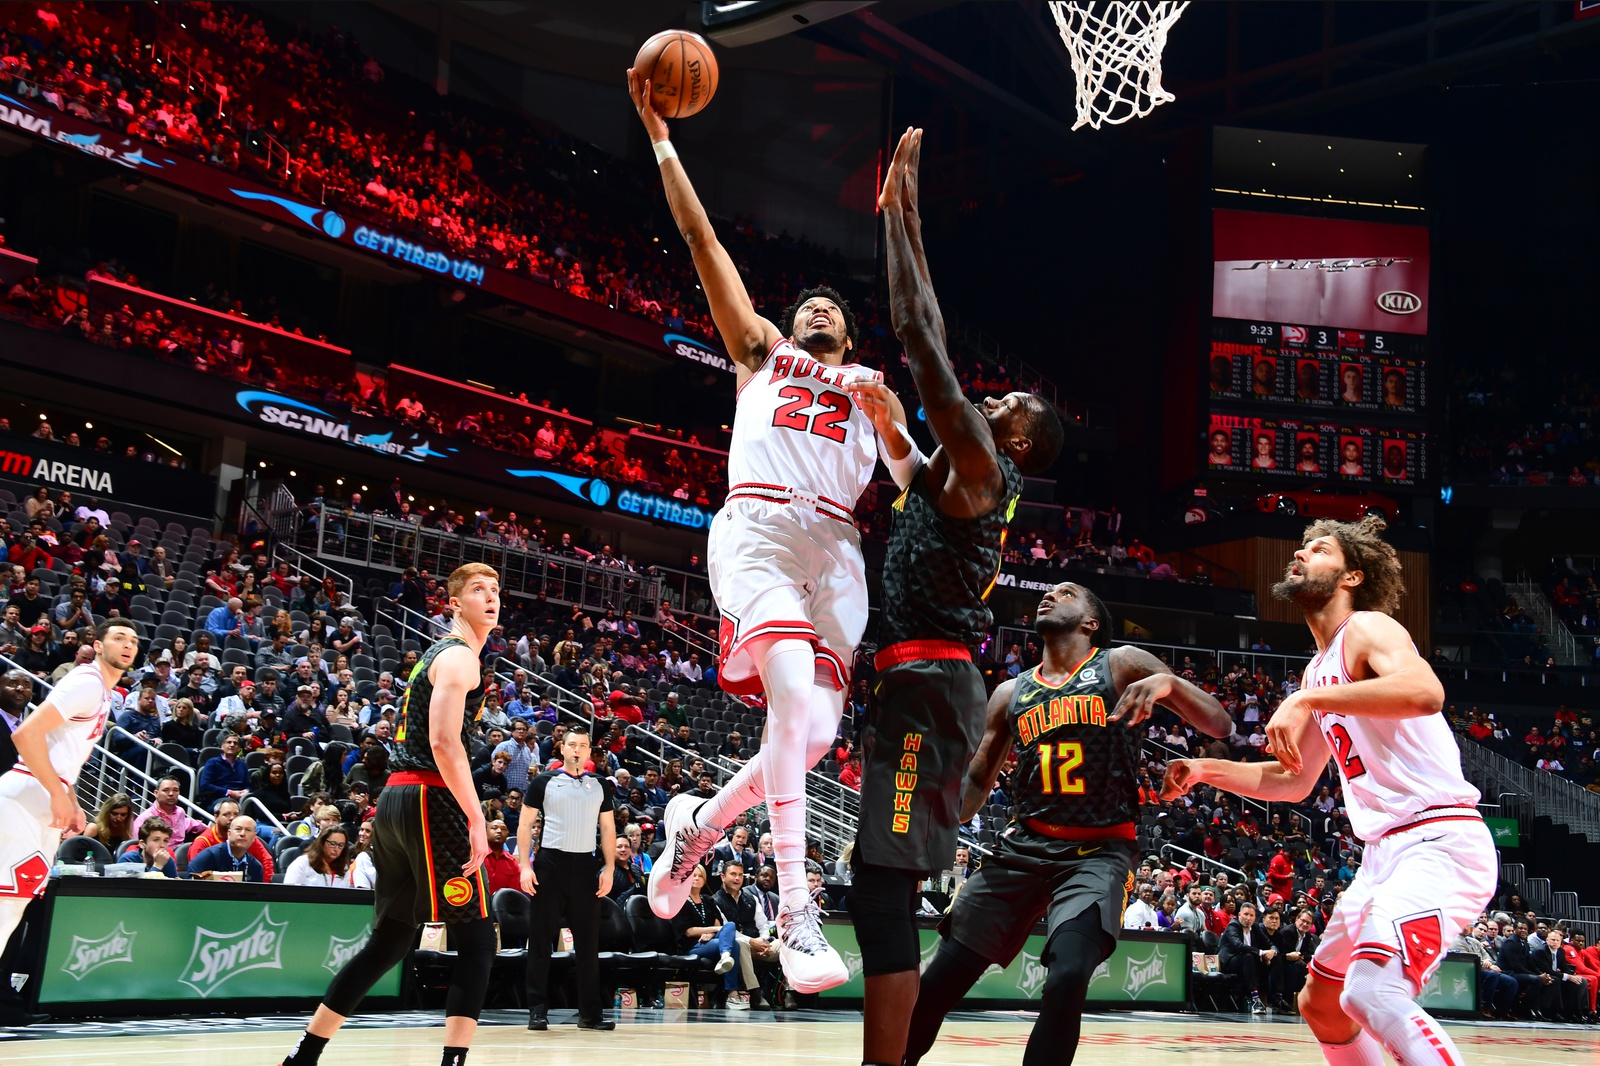 Otto Porter Jr. #22 of the Chicago Bulls shoots the ball against the Atlanta Hawks on March 1, 2019 at State Farm Arena in Atlanta, Georgia.